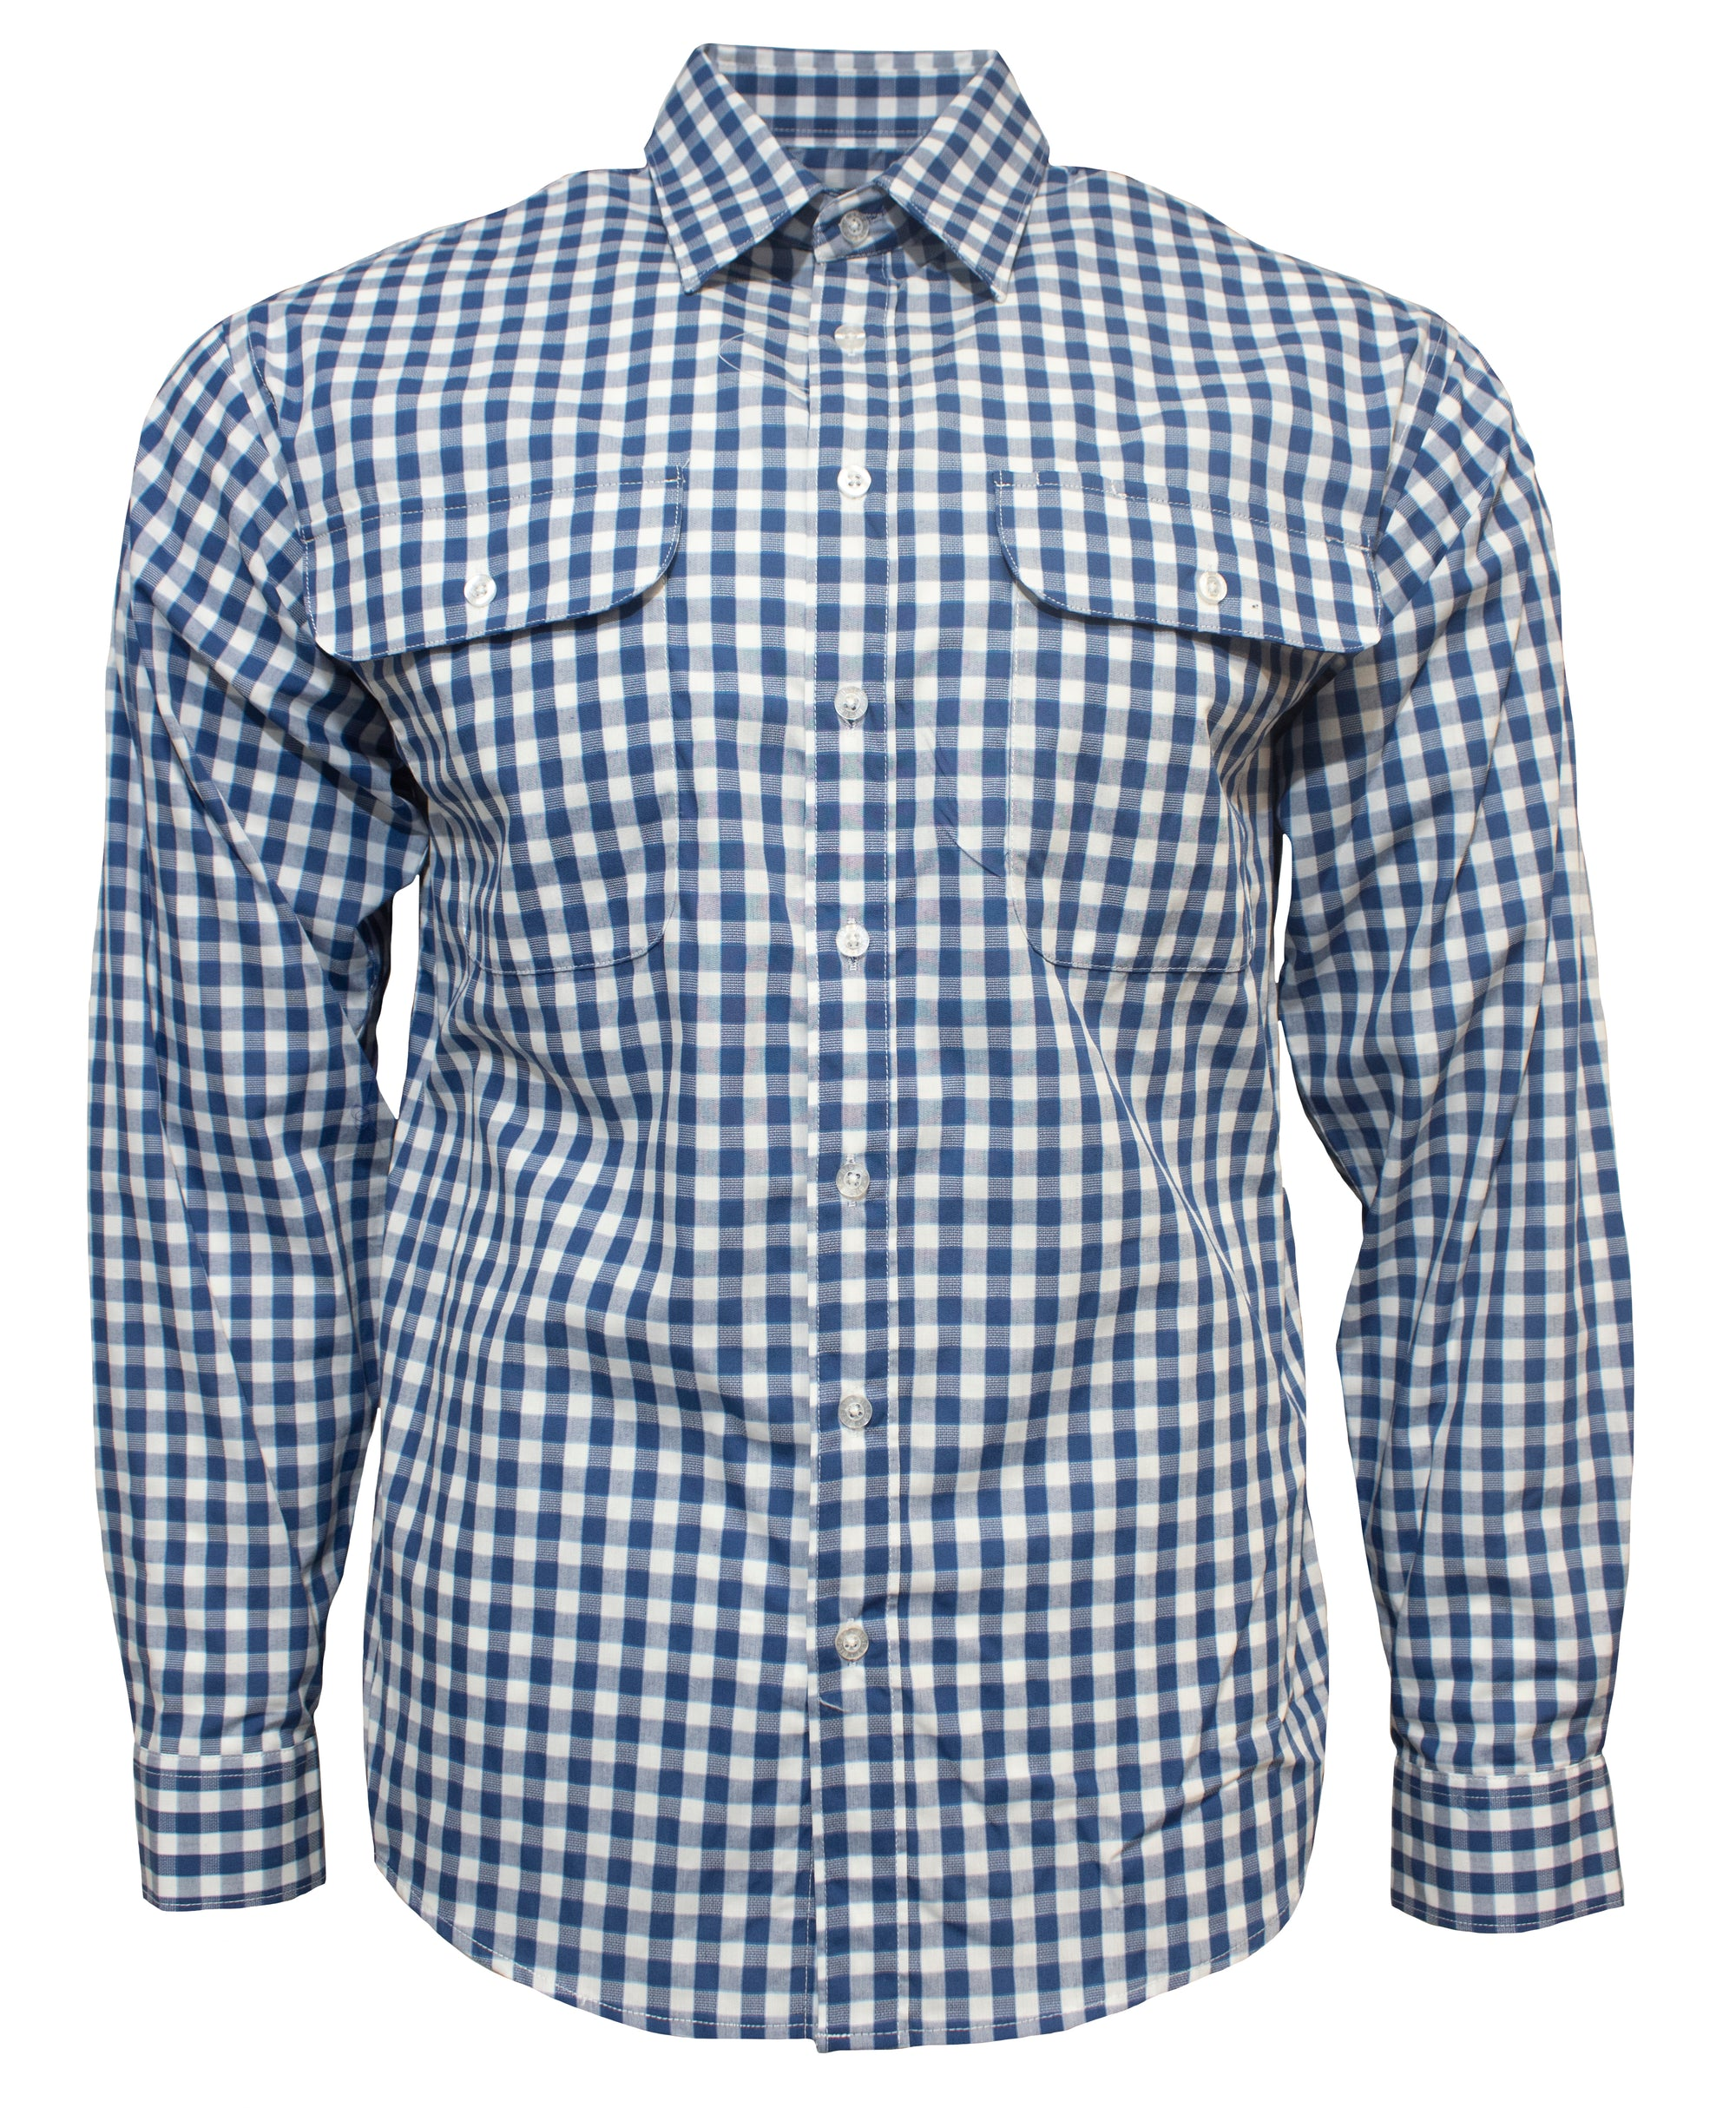 Bisley Countryman Shirt (5616797745310)